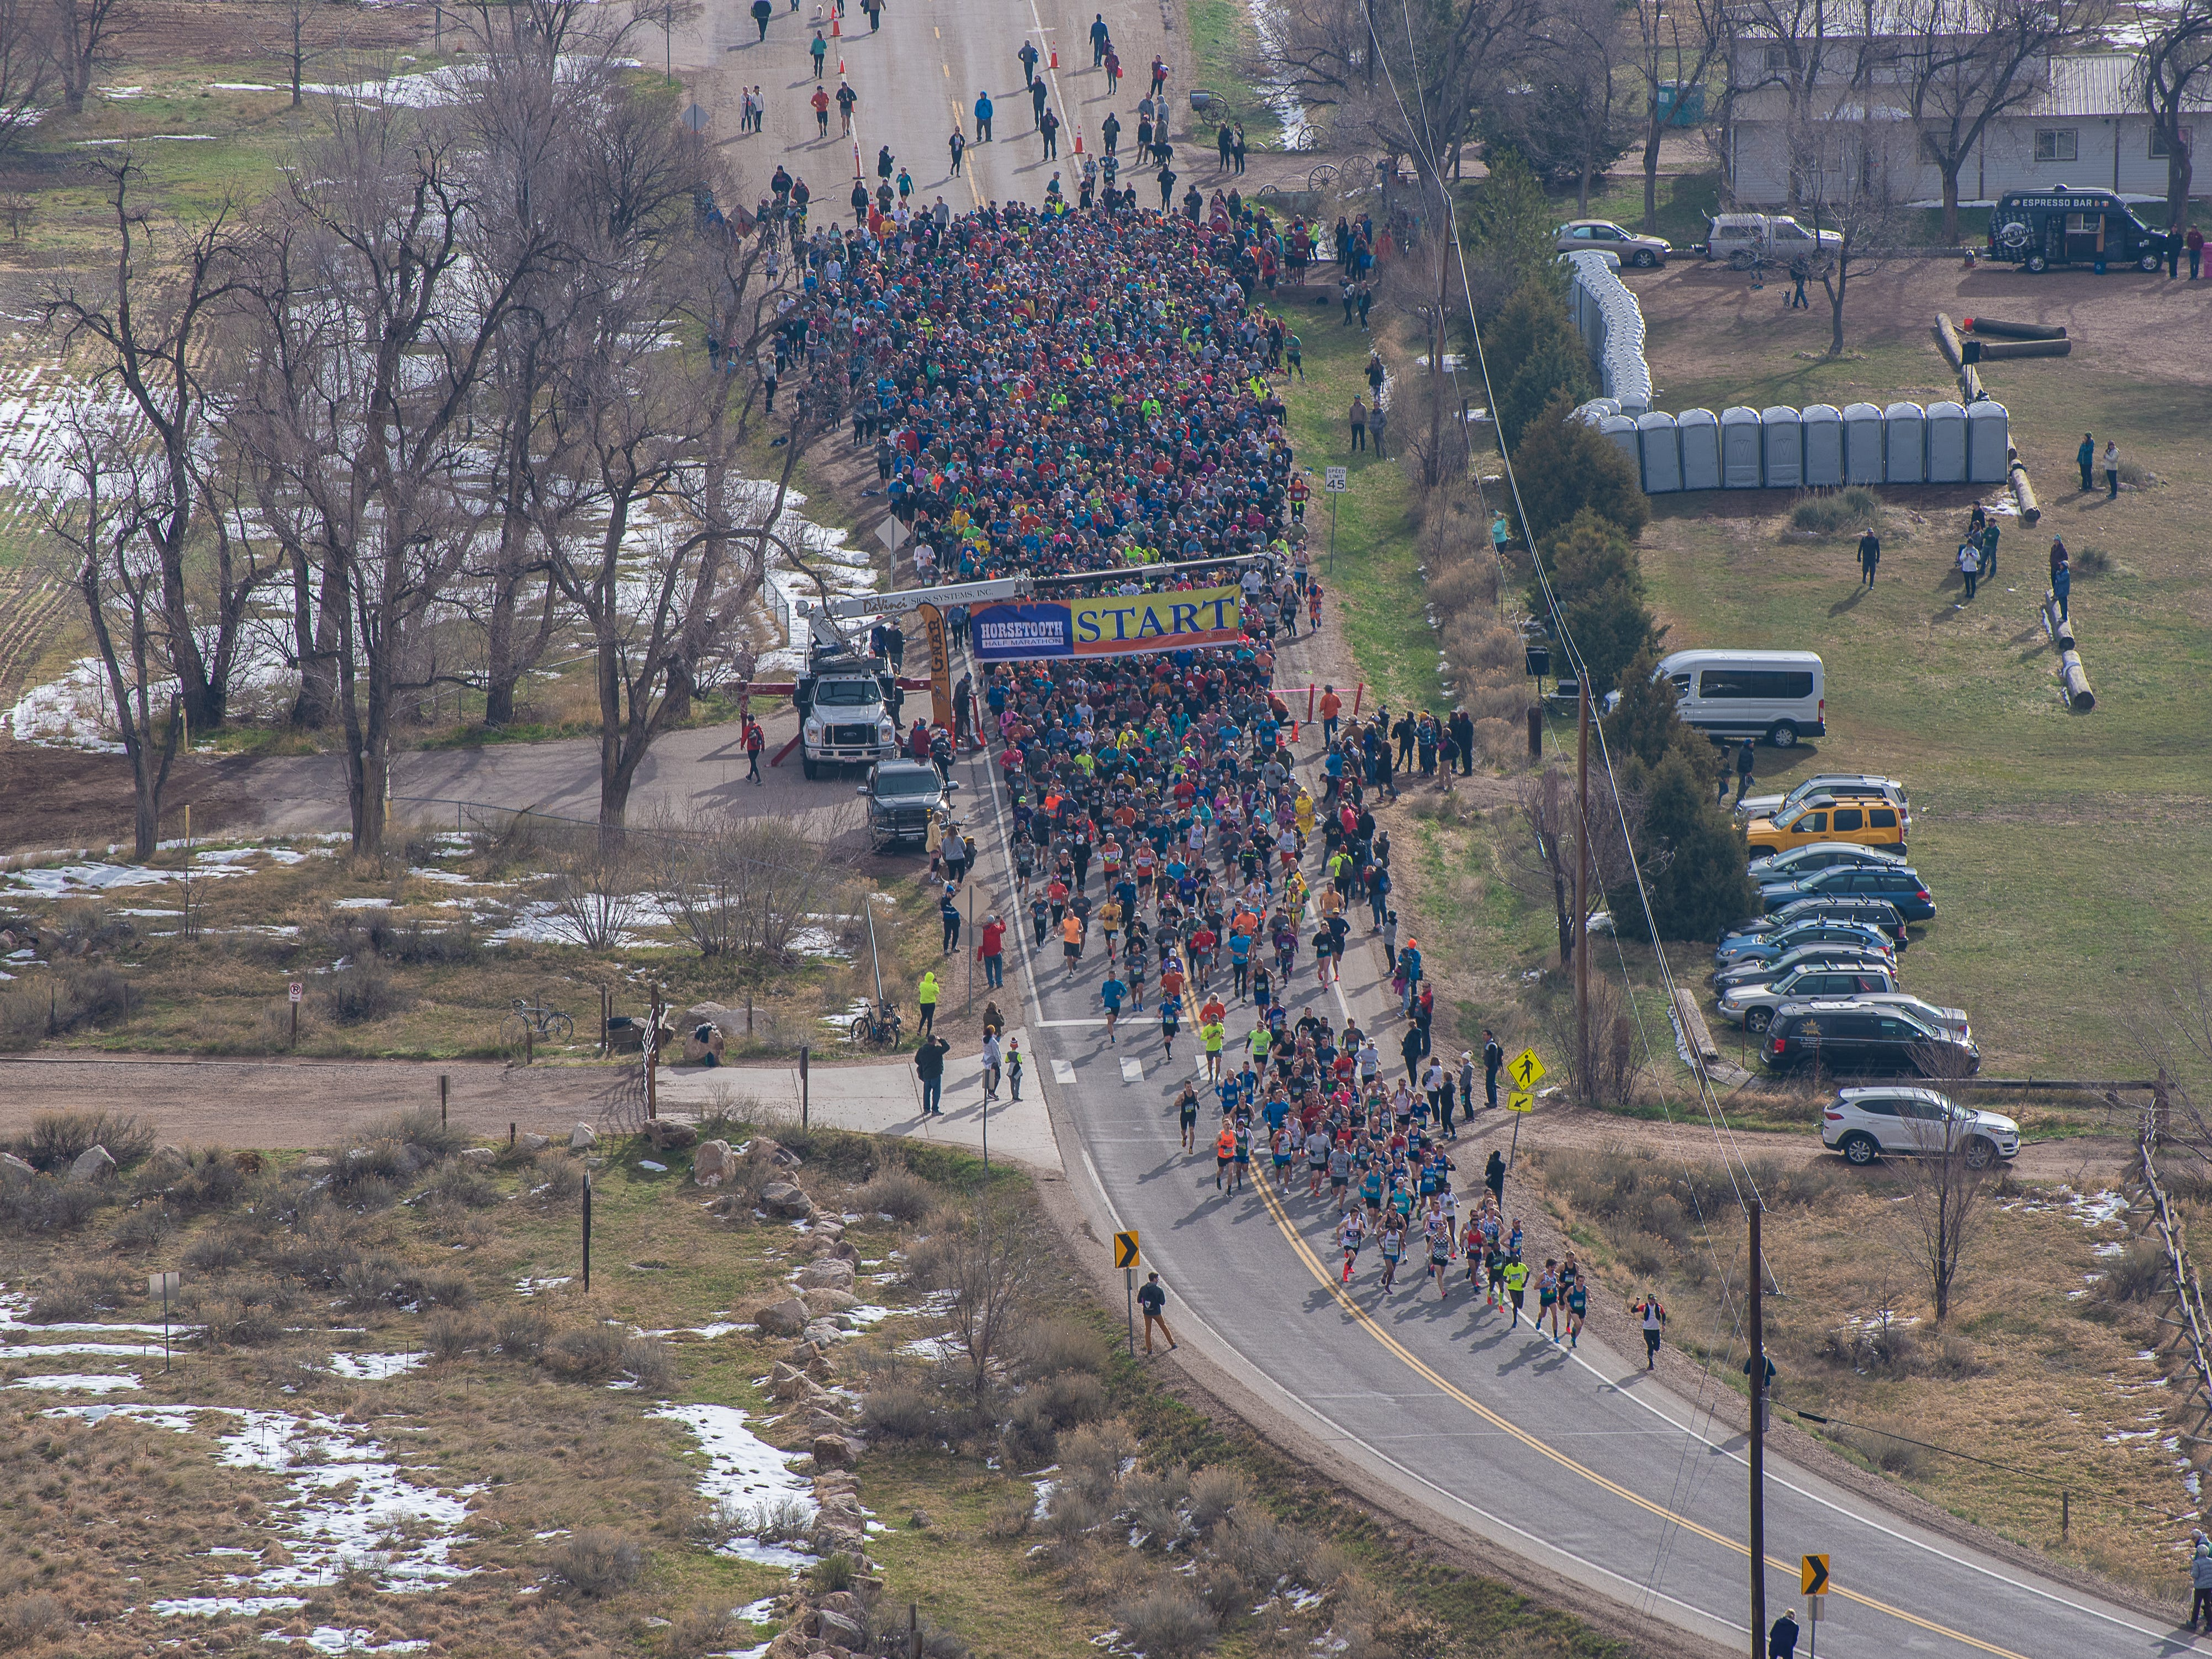 Participants take off from the start line during the Horsetooth Half Marathon on Sunday, April 14, 2019, in Fort Collins, Colo.